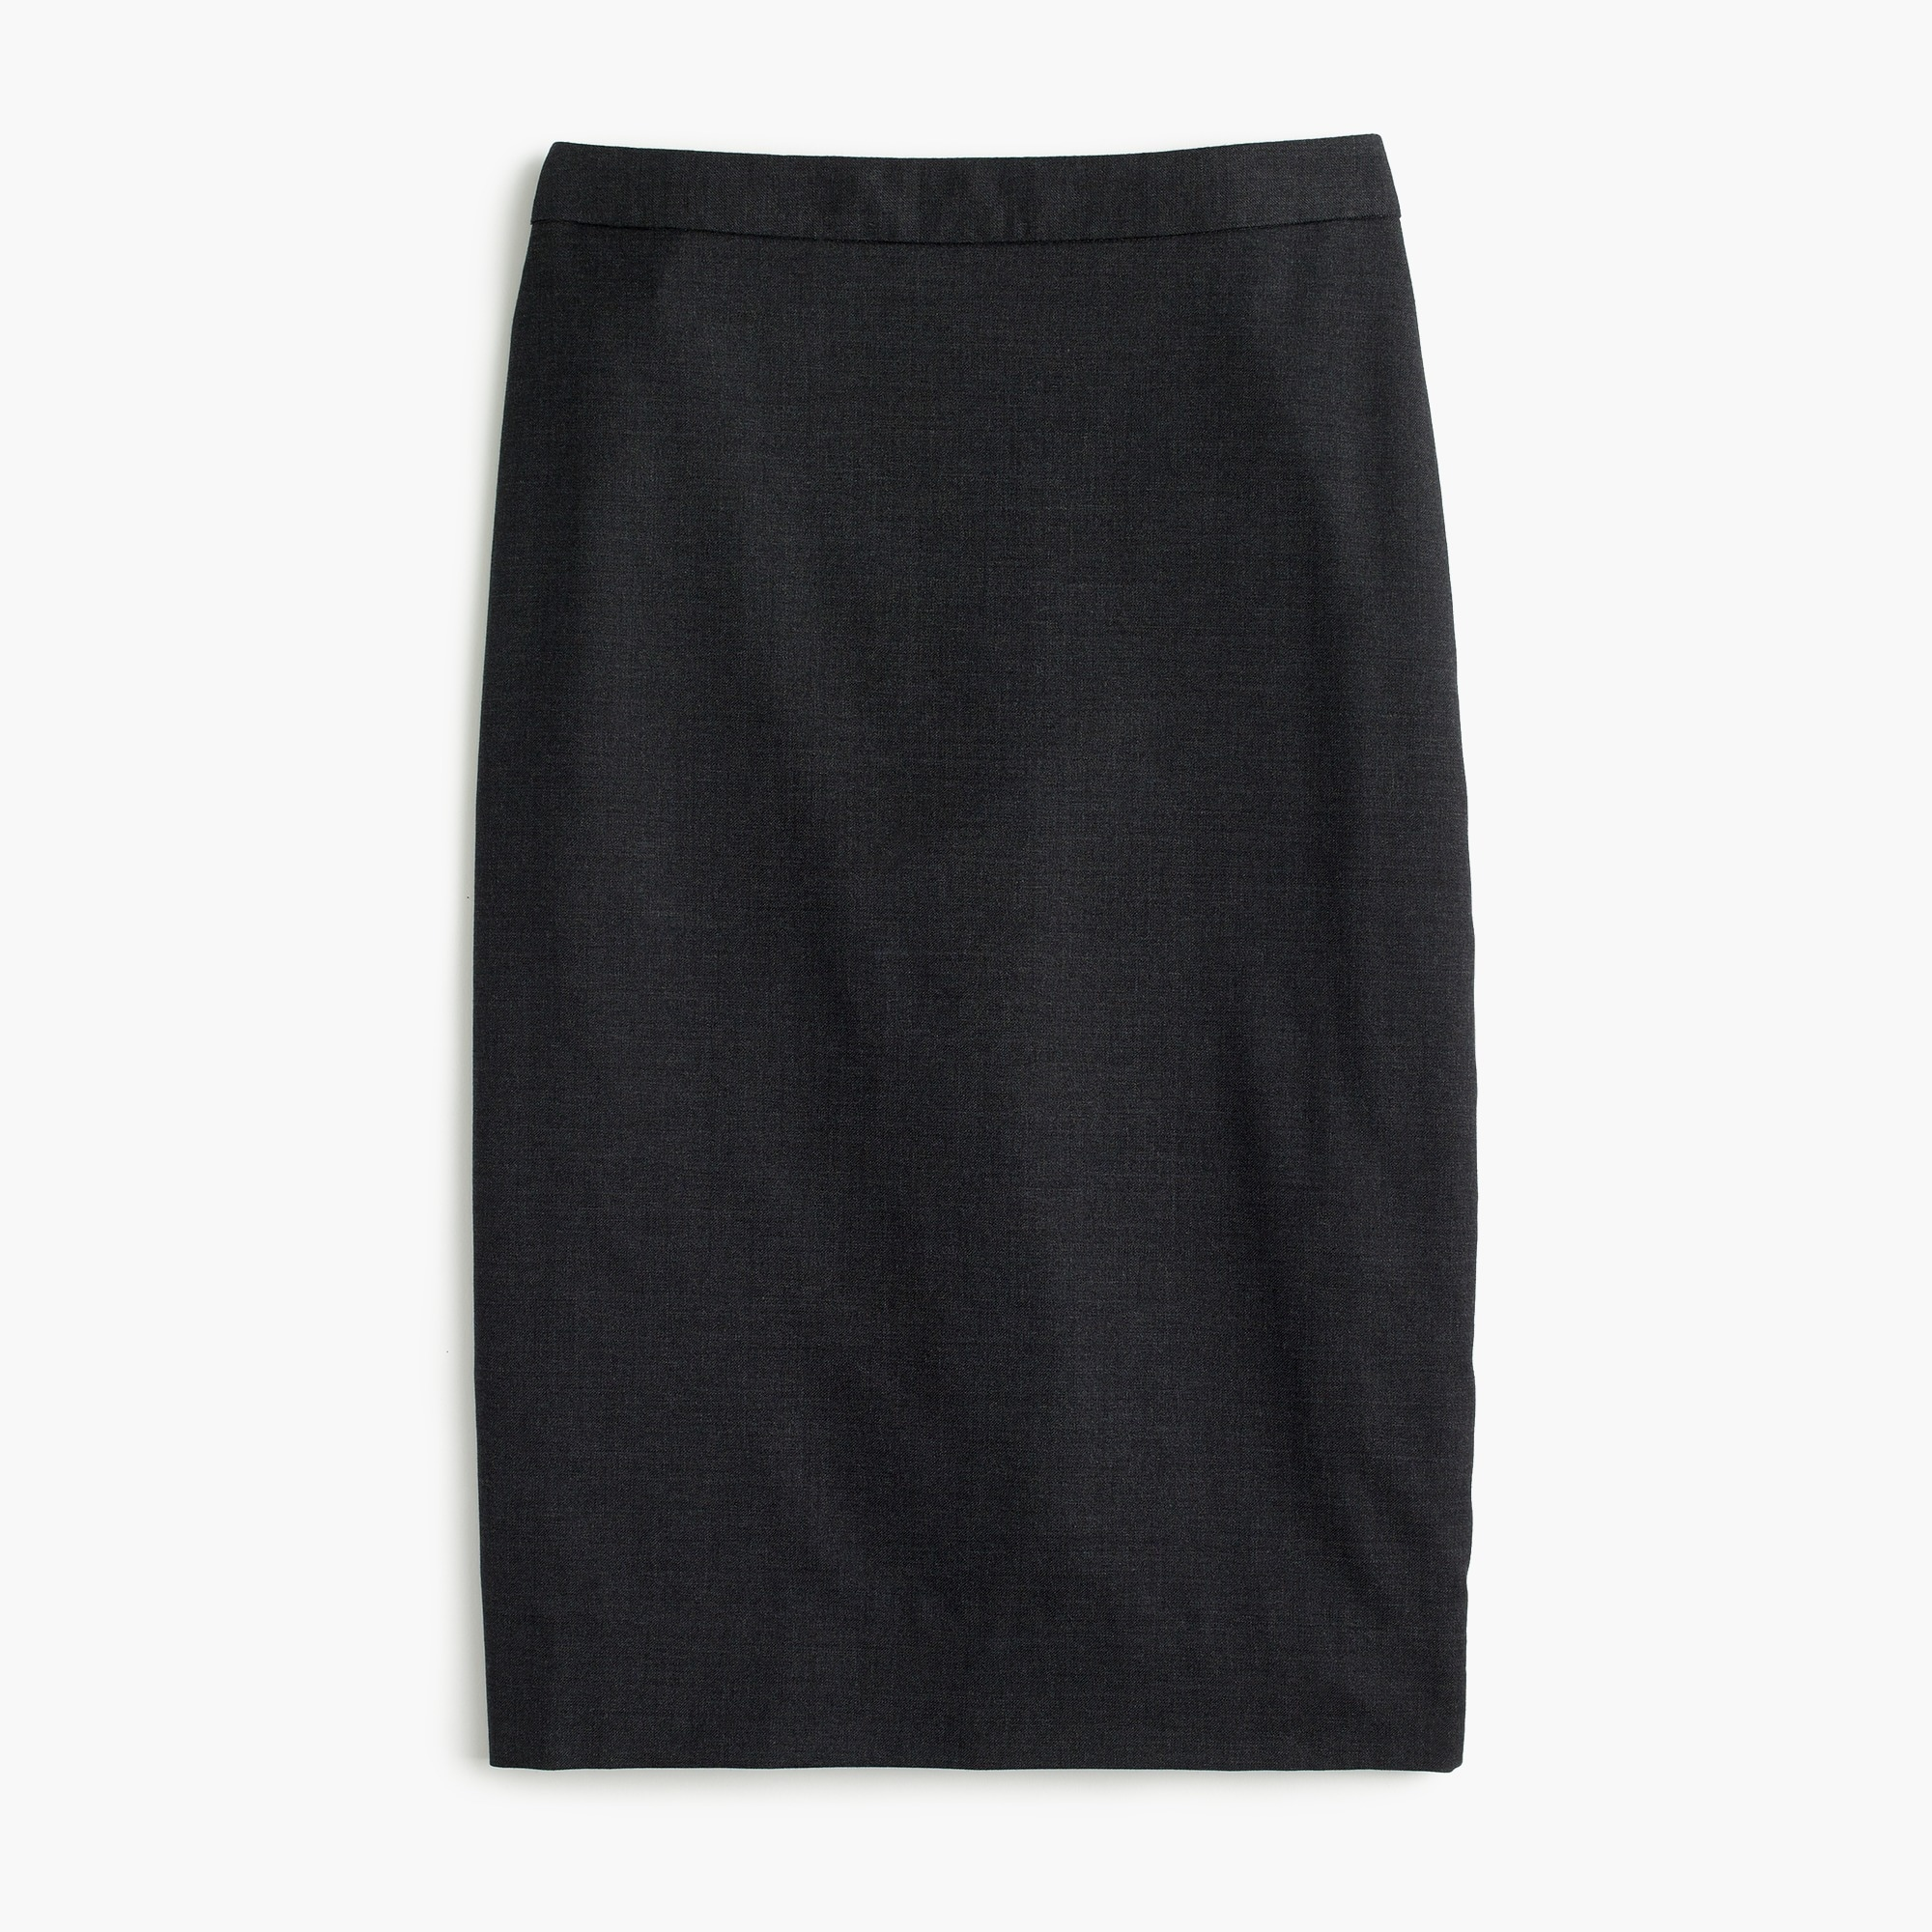 Petite pencil skirt in Italian Super 120s wool